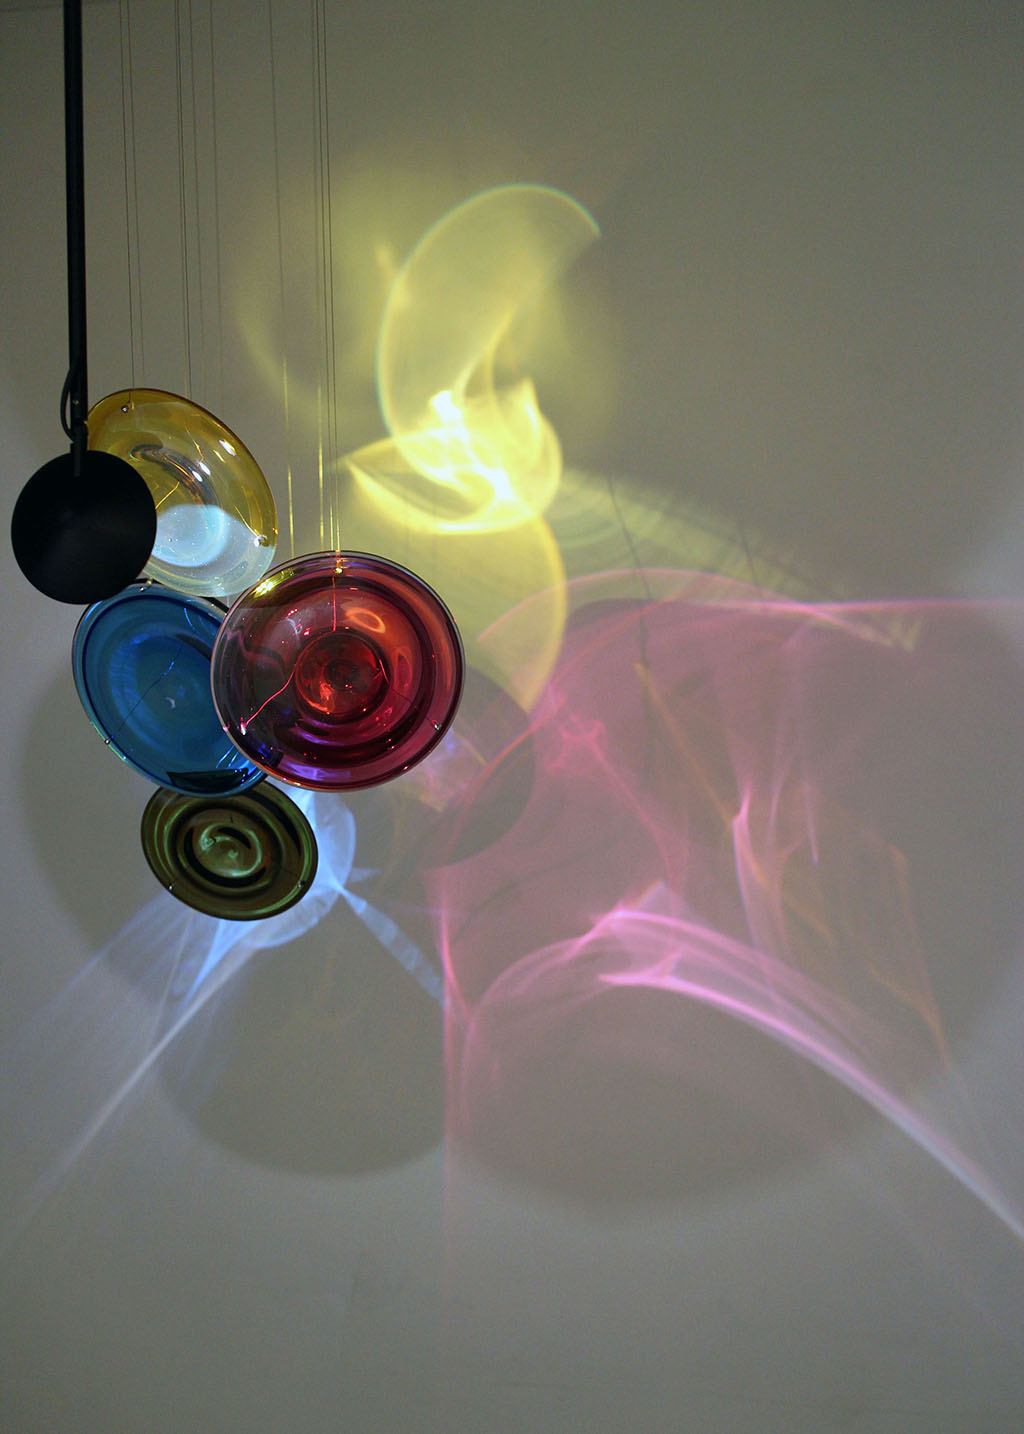 """4me4you visits Gallery Rosenfeld which showcased Riccardo Guarneri & Qingzen Han - """"Painting the Infinite"""". Gallery Rosenfeld ..>The artists place light and the infinite at the centre of their artistic practice; being viewed as a conduit to the mysteries of spirituality and the cosmos. Guarneri and Han speak of the impalpable and both concern themselves with the visible and the virtually invisible as, in different ways, their canvases take us on a voyage of initiation. Formally very different, yet conceptually connected even though from a generational and cultural perspective they are worlds apart. Guarneri's pastel colors divide the canvas into apparently rational aura of line,color and space, the whole ending in the visual equivalent of silence. Guarneri has always been concerned with the almost invisible line between gesture and emptiness, his lines often made with pencil appear out of space, which we find ourselves staring into aware that some pale shade of color or mark maybe lurking there barely visible. The young Chinese artist Qingzhen Han is far more baroque. Her line is rarely straight but can wiggle it's way across the canvas; here colors are stronger and hardly ever applied in a perfect geometric shape. She has a bewildering array of gestures which vary from work to work.."""